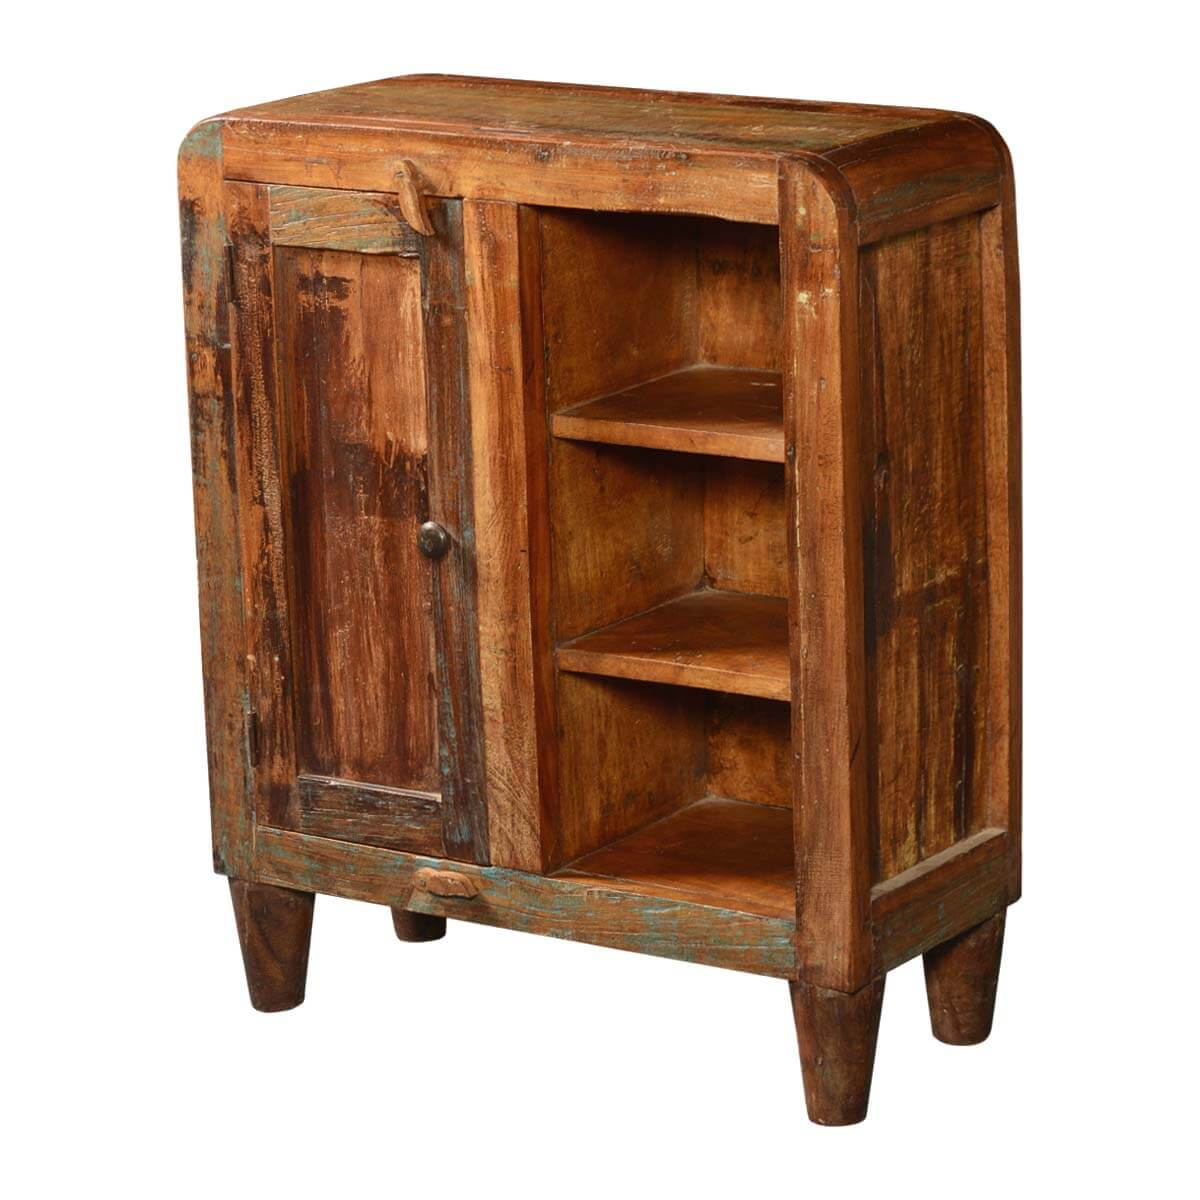 Reclaimed Wood Cabinets ~ Rounded corners reclaimed wood rustic cabinet w display